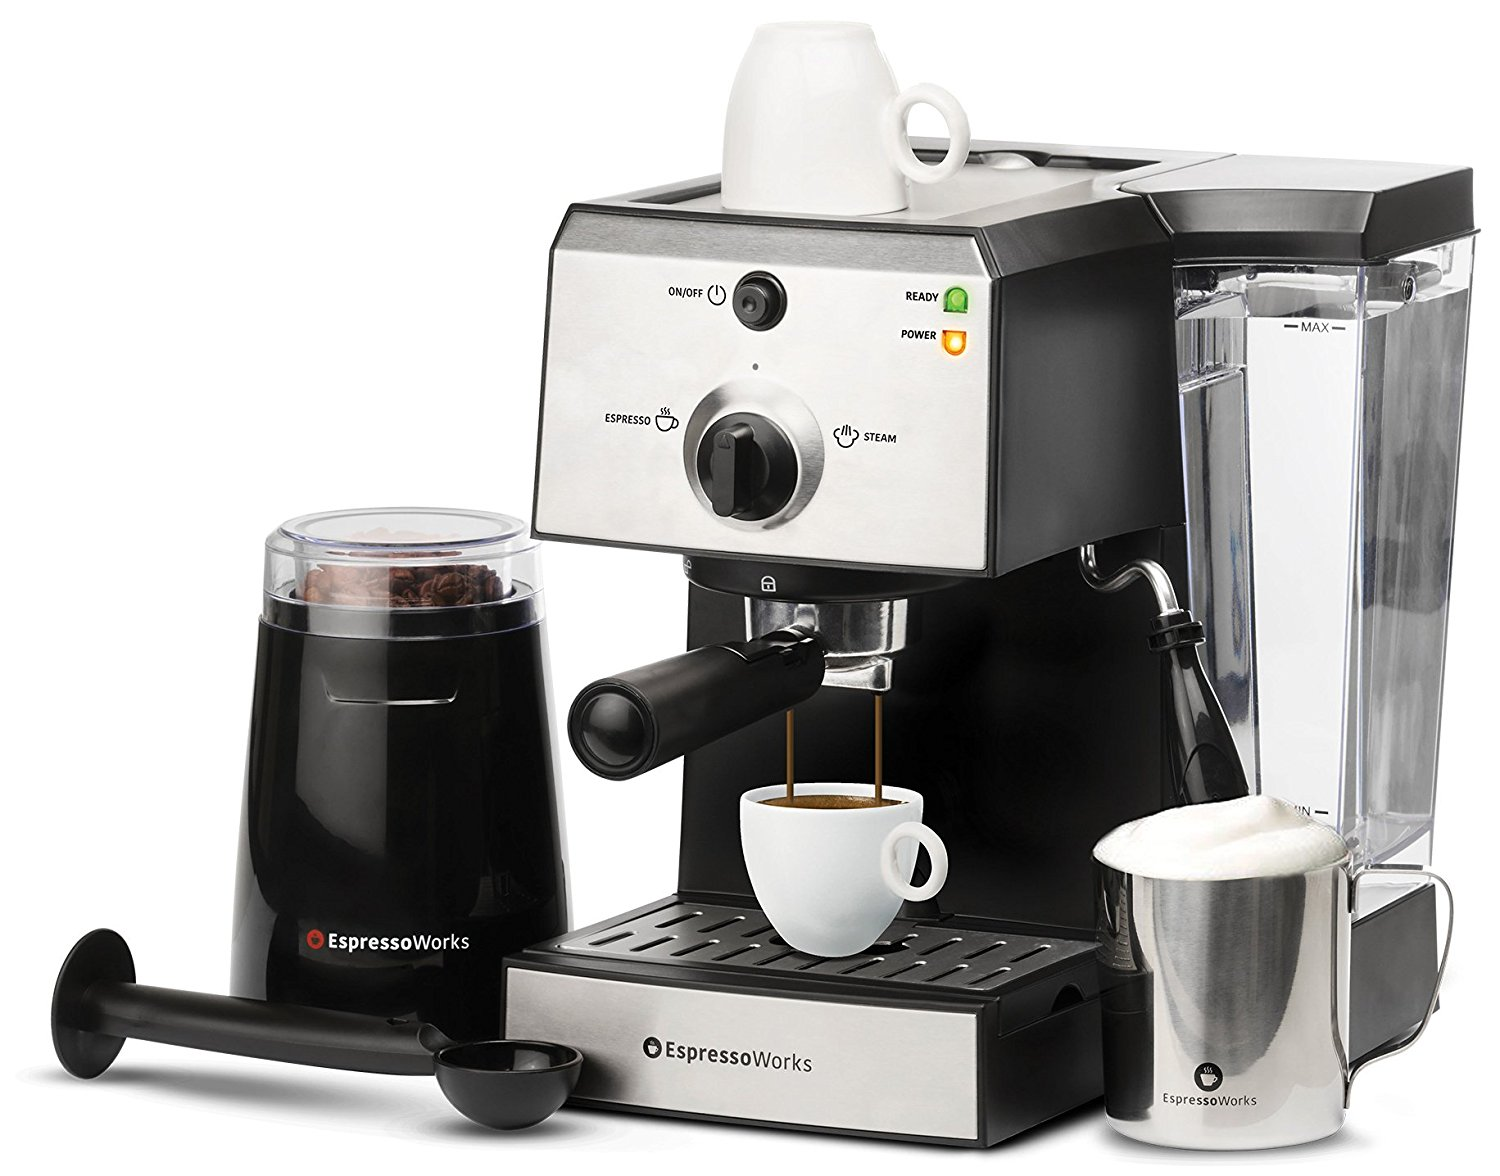 espressoworks-7-pc-all-in-one-espresso-machine-bundle-set